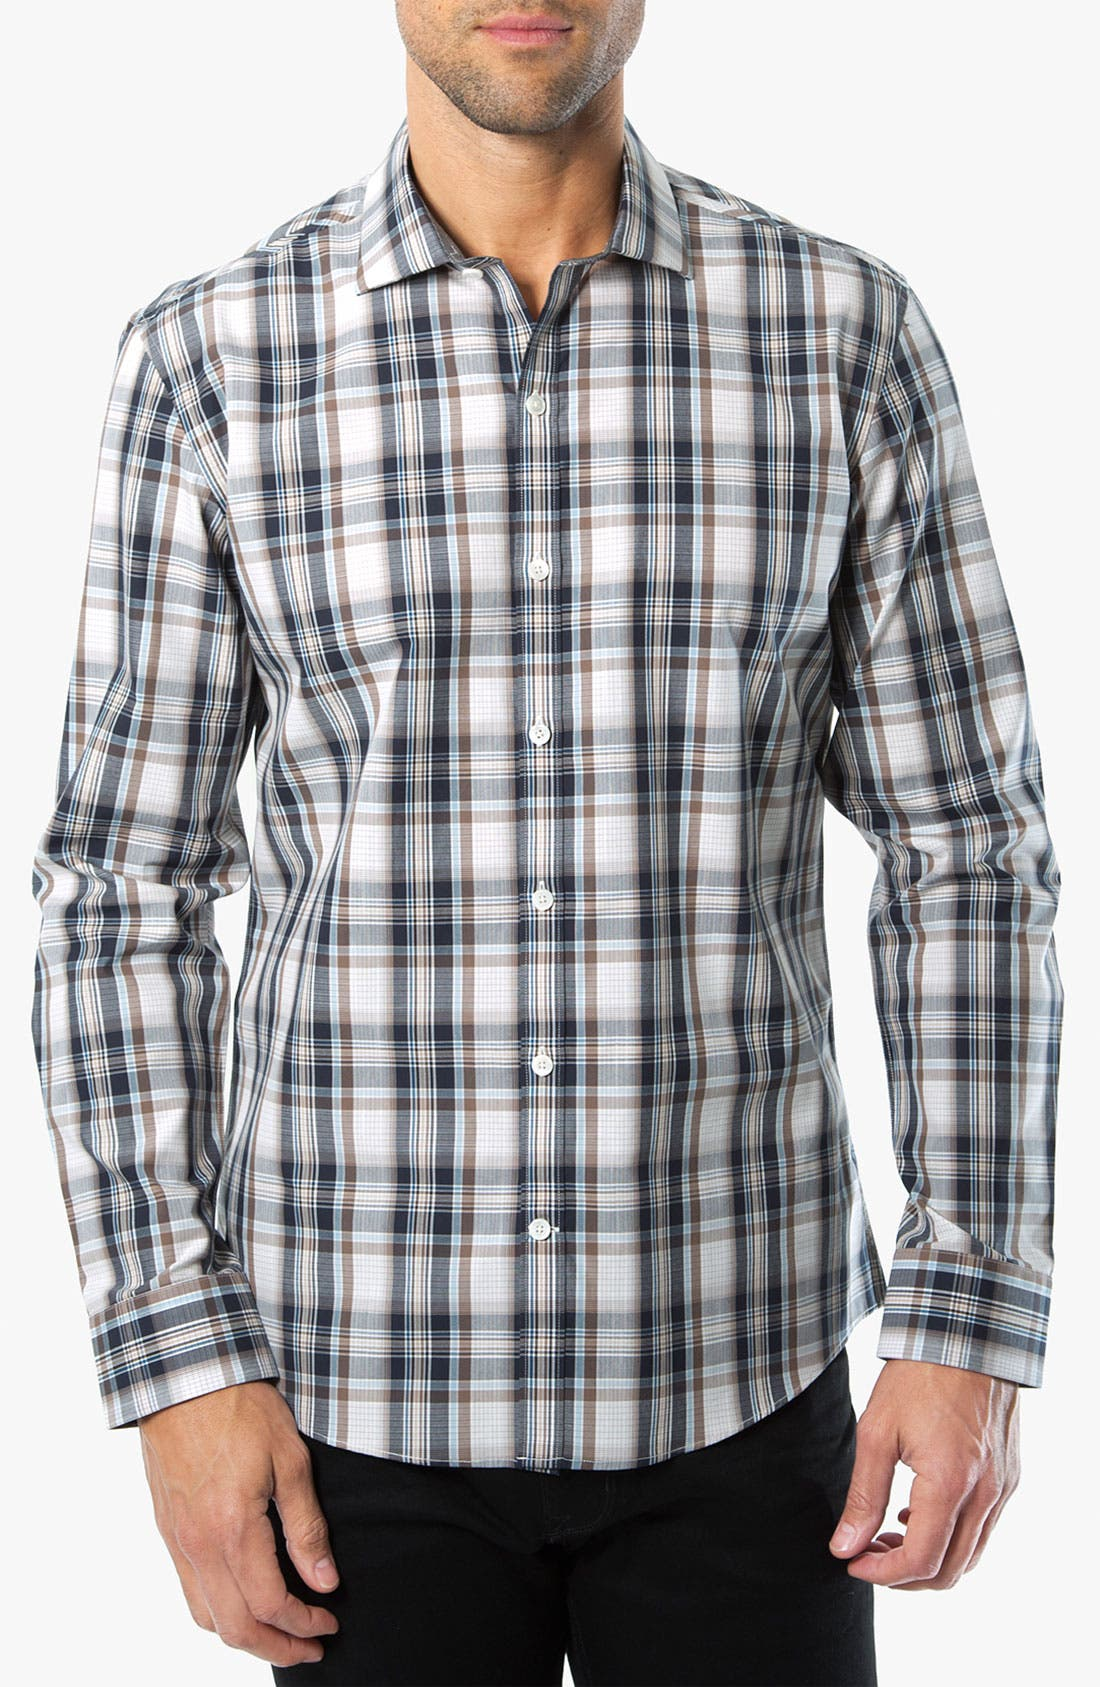 Alternate Image 1 Selected - Kenson 'High Noon' Plaid Woven Shirt